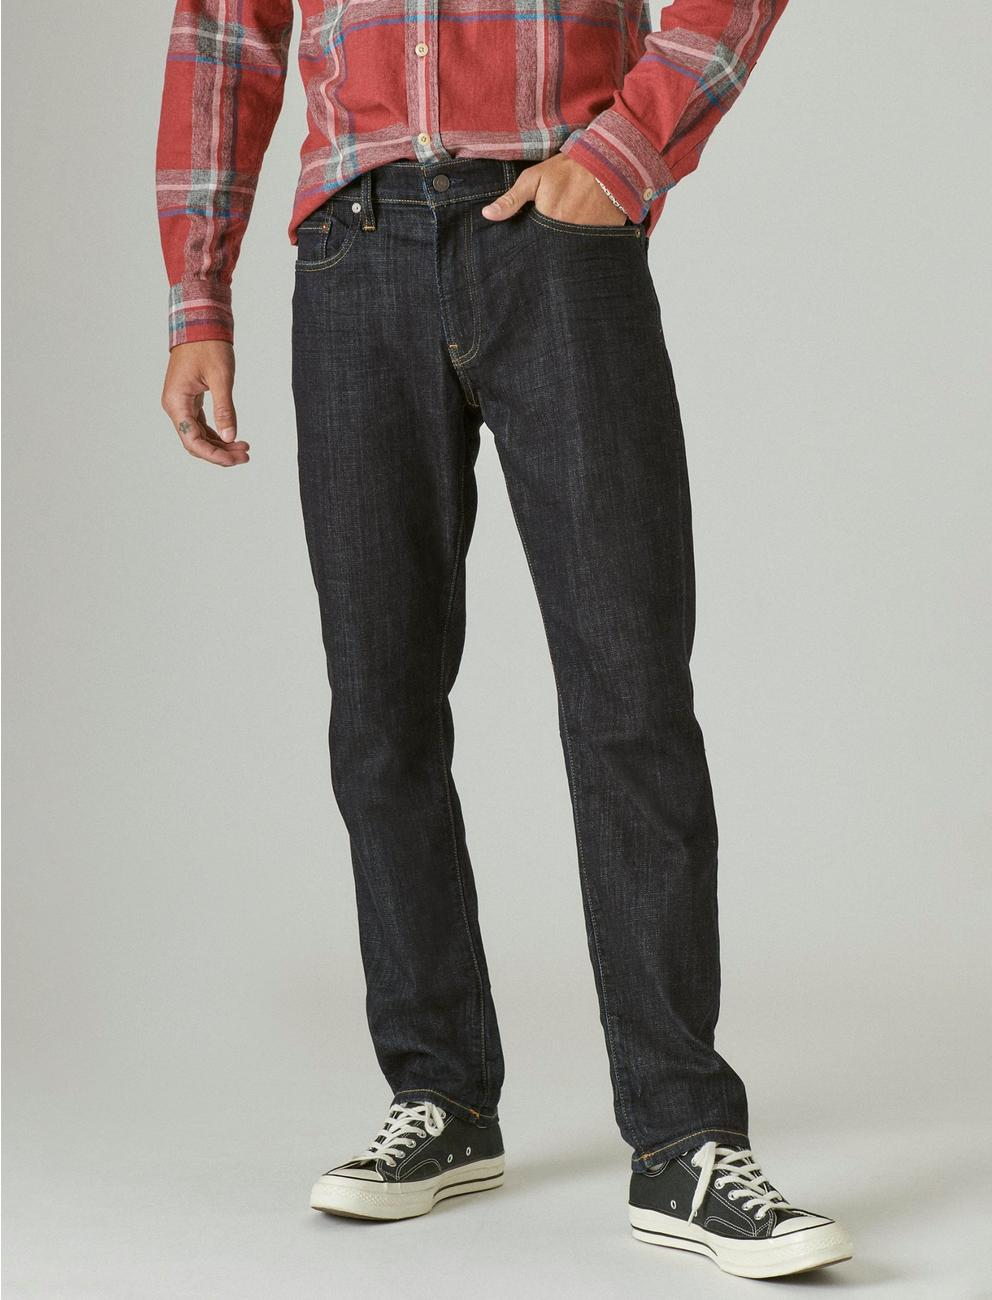 410 ATHLETIC SLIM COOLMAX ALL SEASON TECHNOLOGY JEAN, HULA